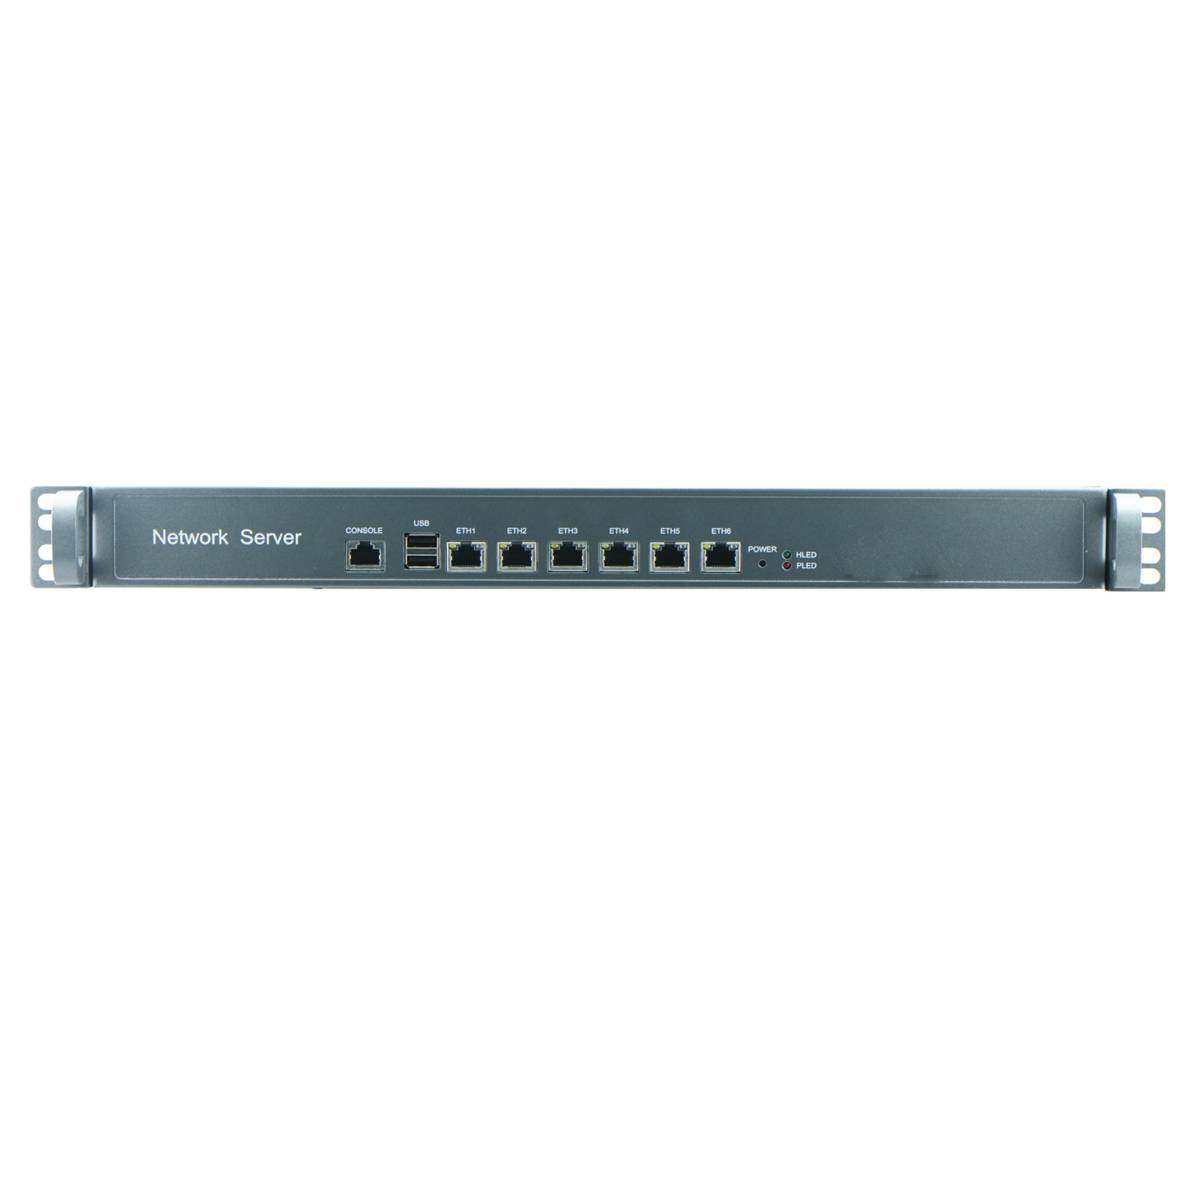 Cheap Intel Atom D2550 1U Industrial Rackmount Barebone for Network Security Application with 6Nic